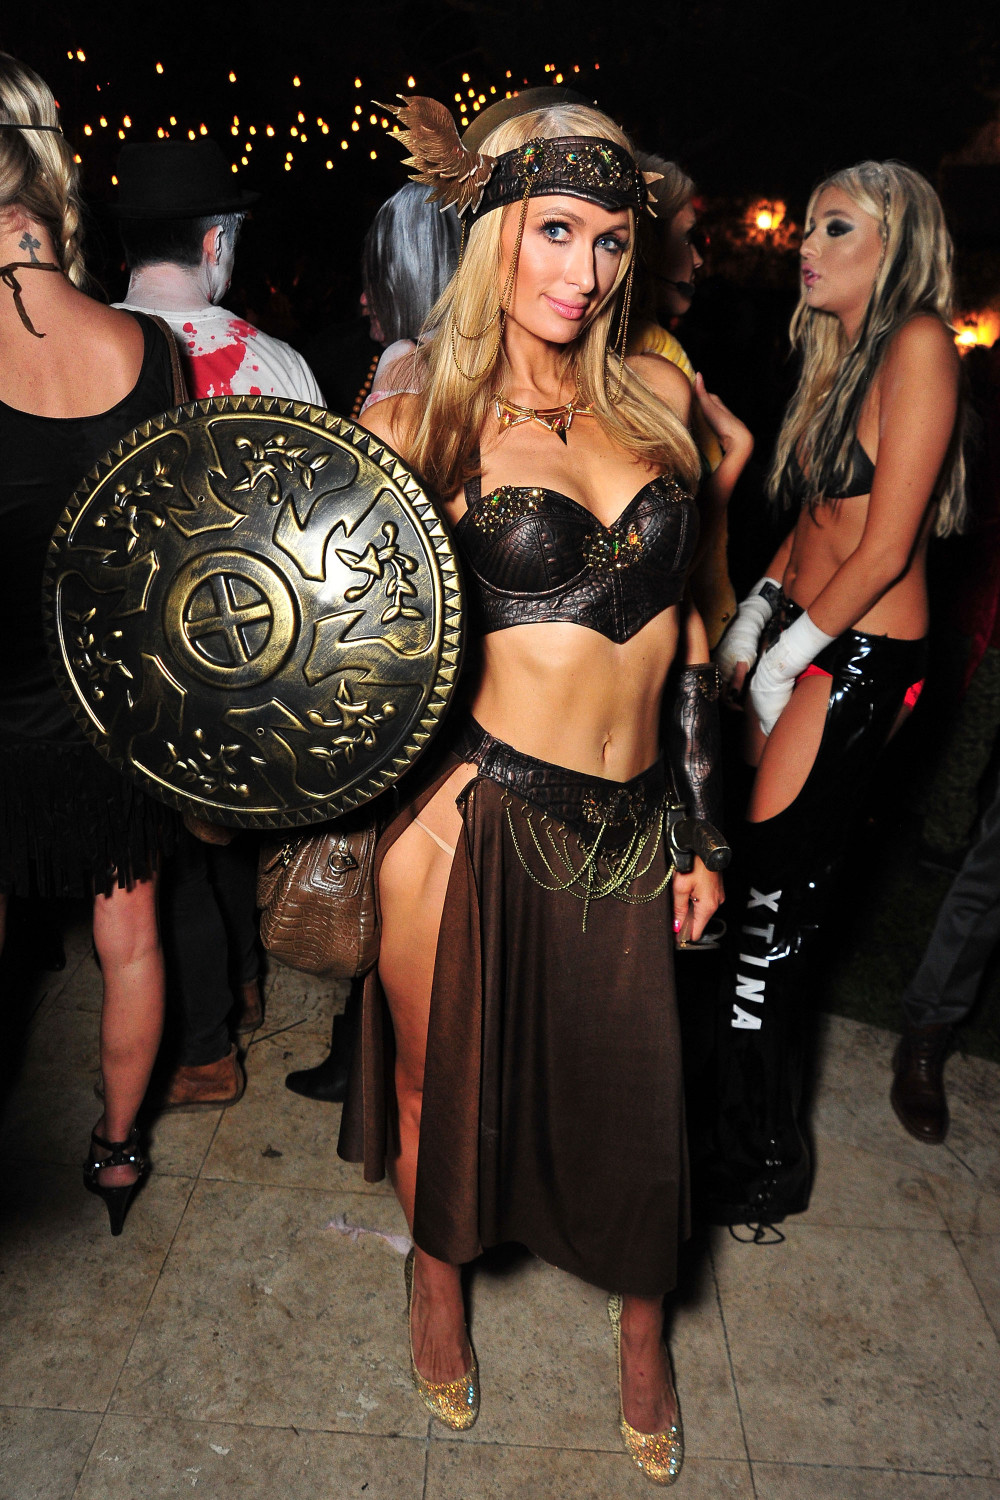 Women Wearing Revealing Warrior Outfits - Page 16 2015-Celebrity-Halloween-Costumes-BellaNaija-4